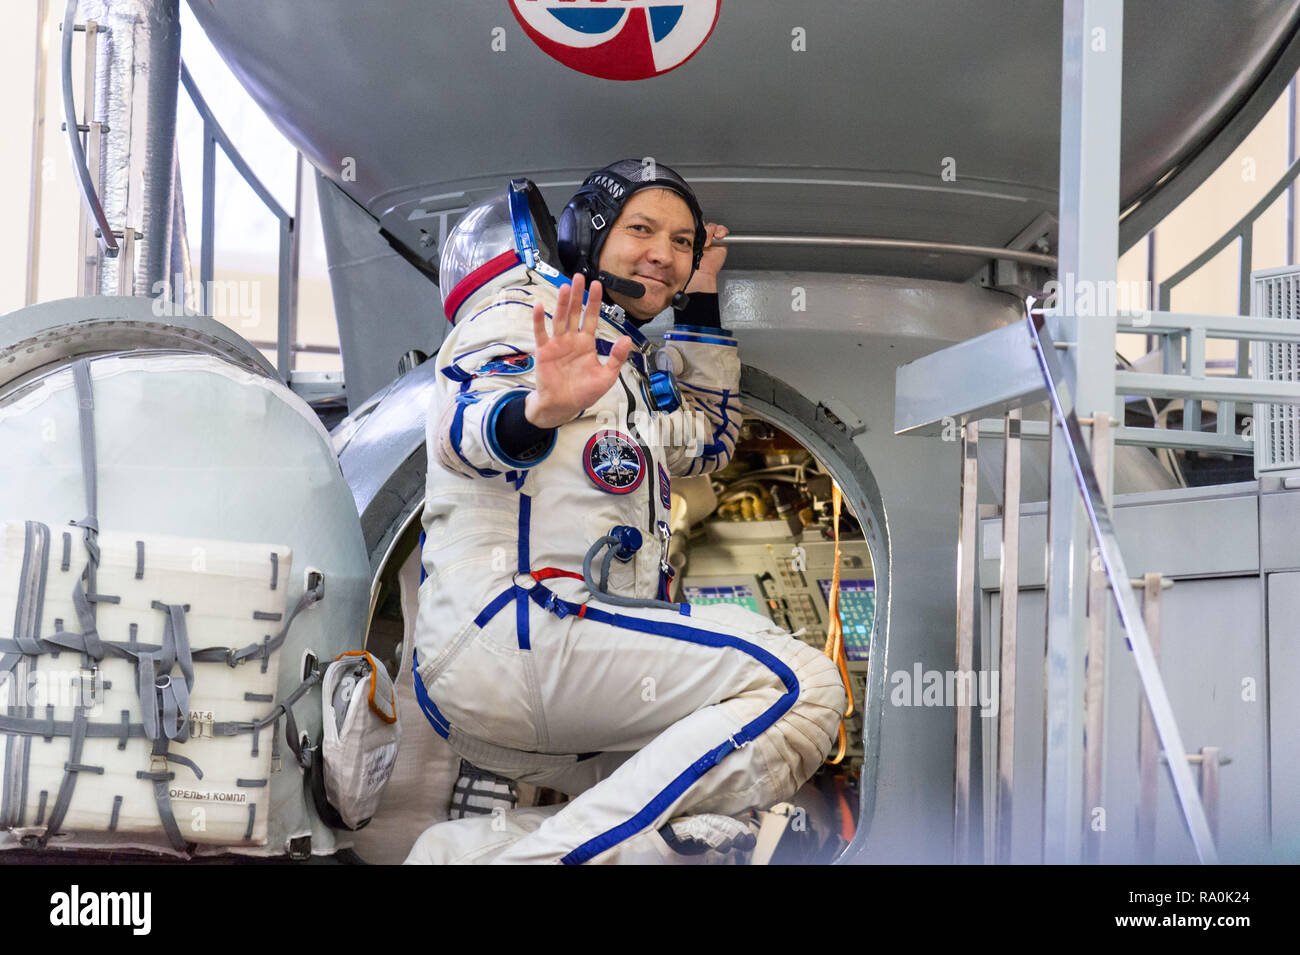 International Space Station Expedition 58 crew member Oleg Kononenko of Roscosmos waves as he enters the Soyuz simulator at the Gagarin Cosmonaut Training Center November 14, 2018 in Star City, Russia. The three are scheduled to launch December 3rd from the Baikonur Cosmodrome in Kazakhstan for a six-and-a-half month mission on the International Space Station. - Stock Image